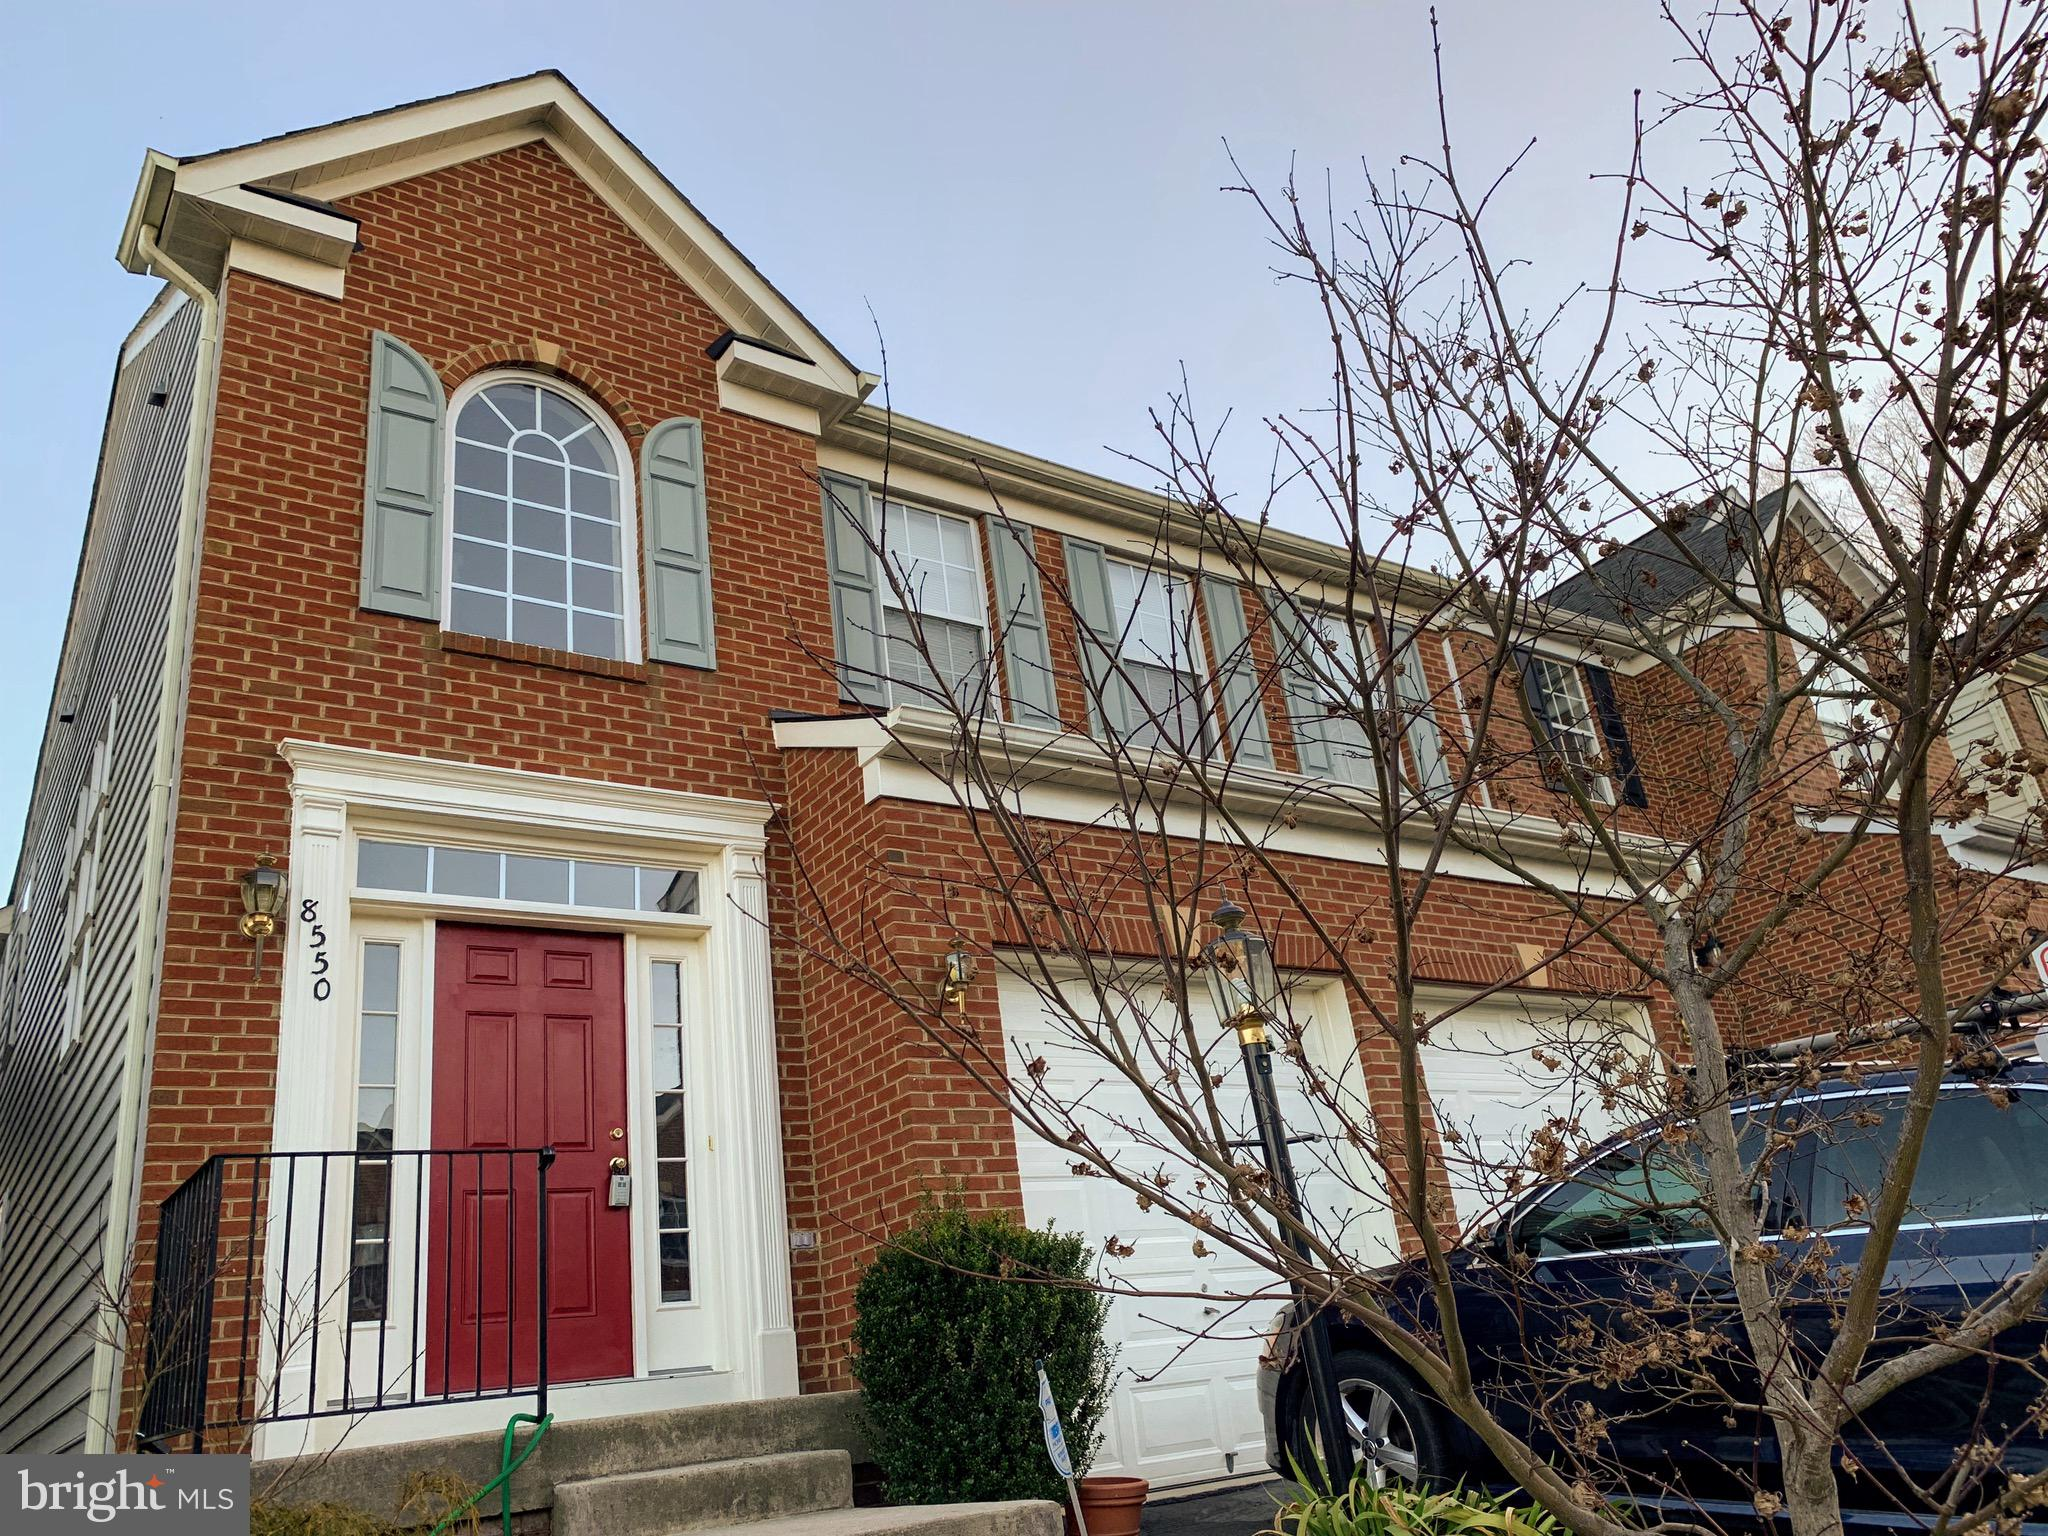 Great location in Lorton Valley, 3-story home with 4 BR/4.5BA, hardwood floor throughout main level, granite kitchen with SS appliances, fully finished basement with den. Minutes access to Lorton VRE, Springfield Metro, I95, FFX Co. Pkwy, F.t Belvoir, Quantico, and malls.